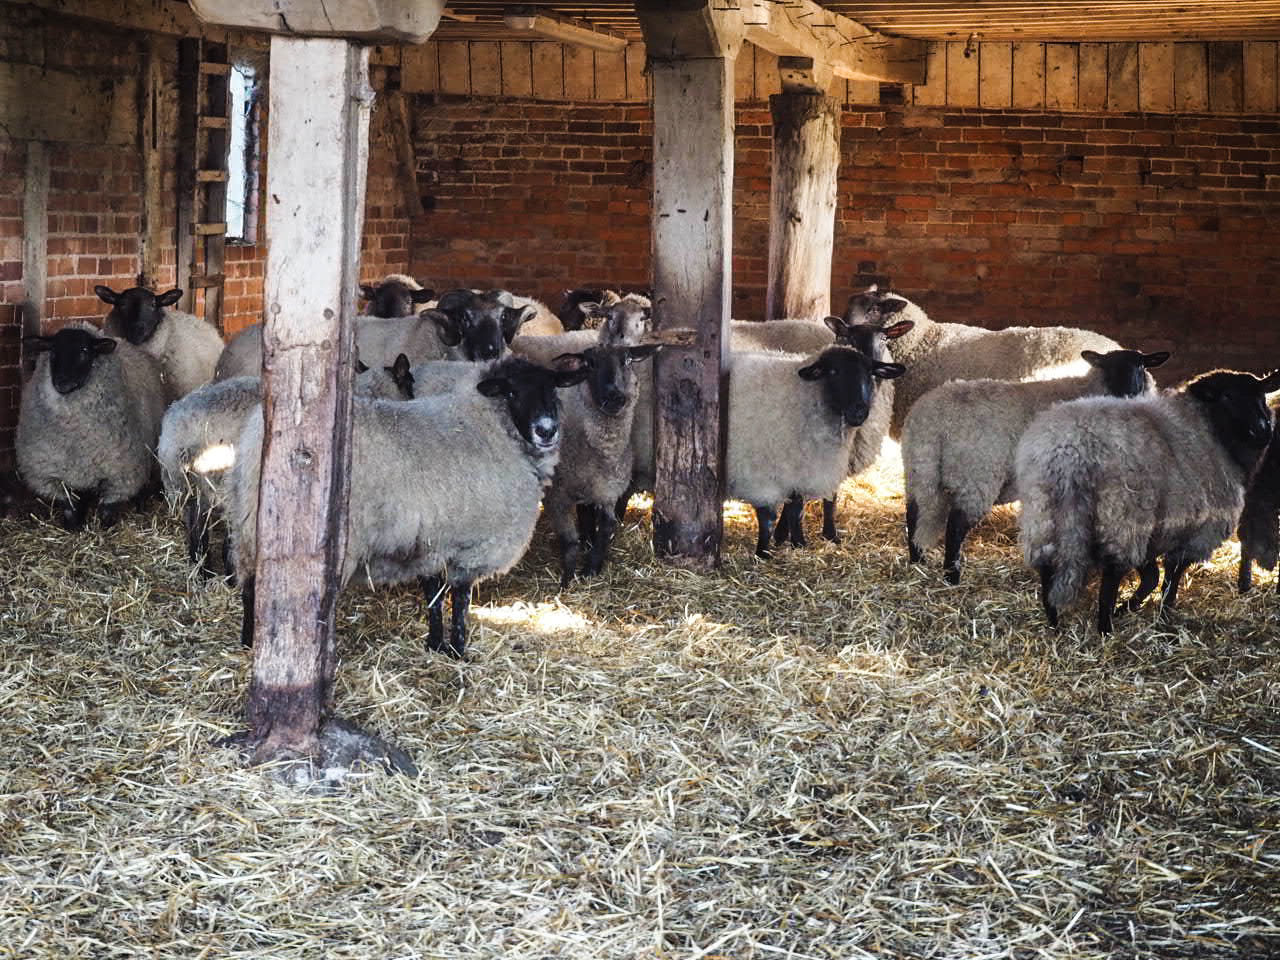 domestic animals, animal themes, livestock, mammal, no people, day, indoors, built structure, large group of animals, grass, nature